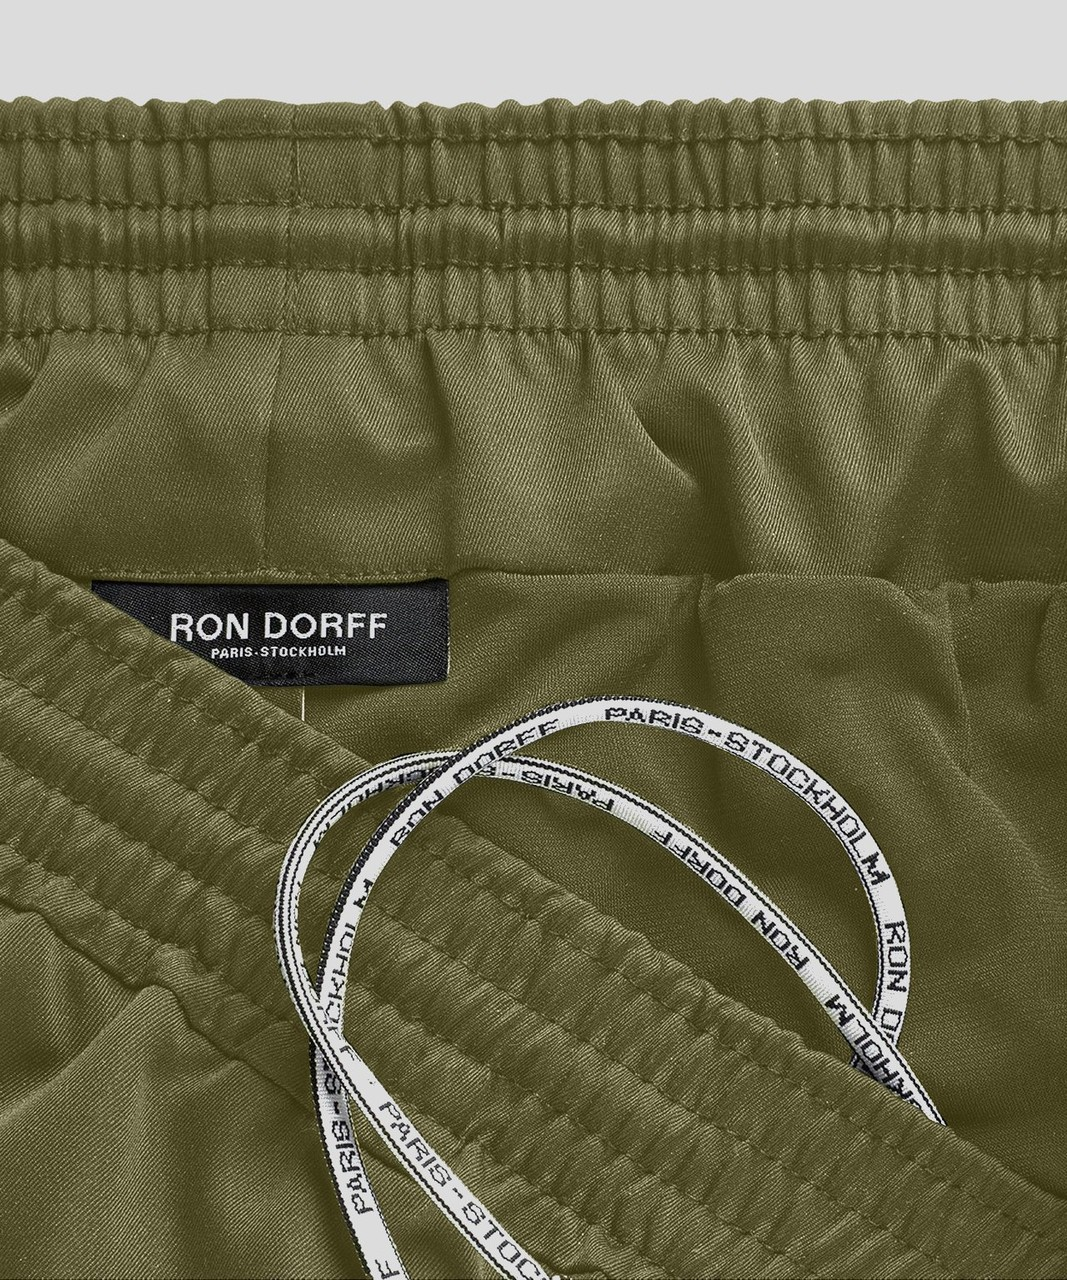 Ron Dorff Exerciser Shorts Eyelet Edition in Army